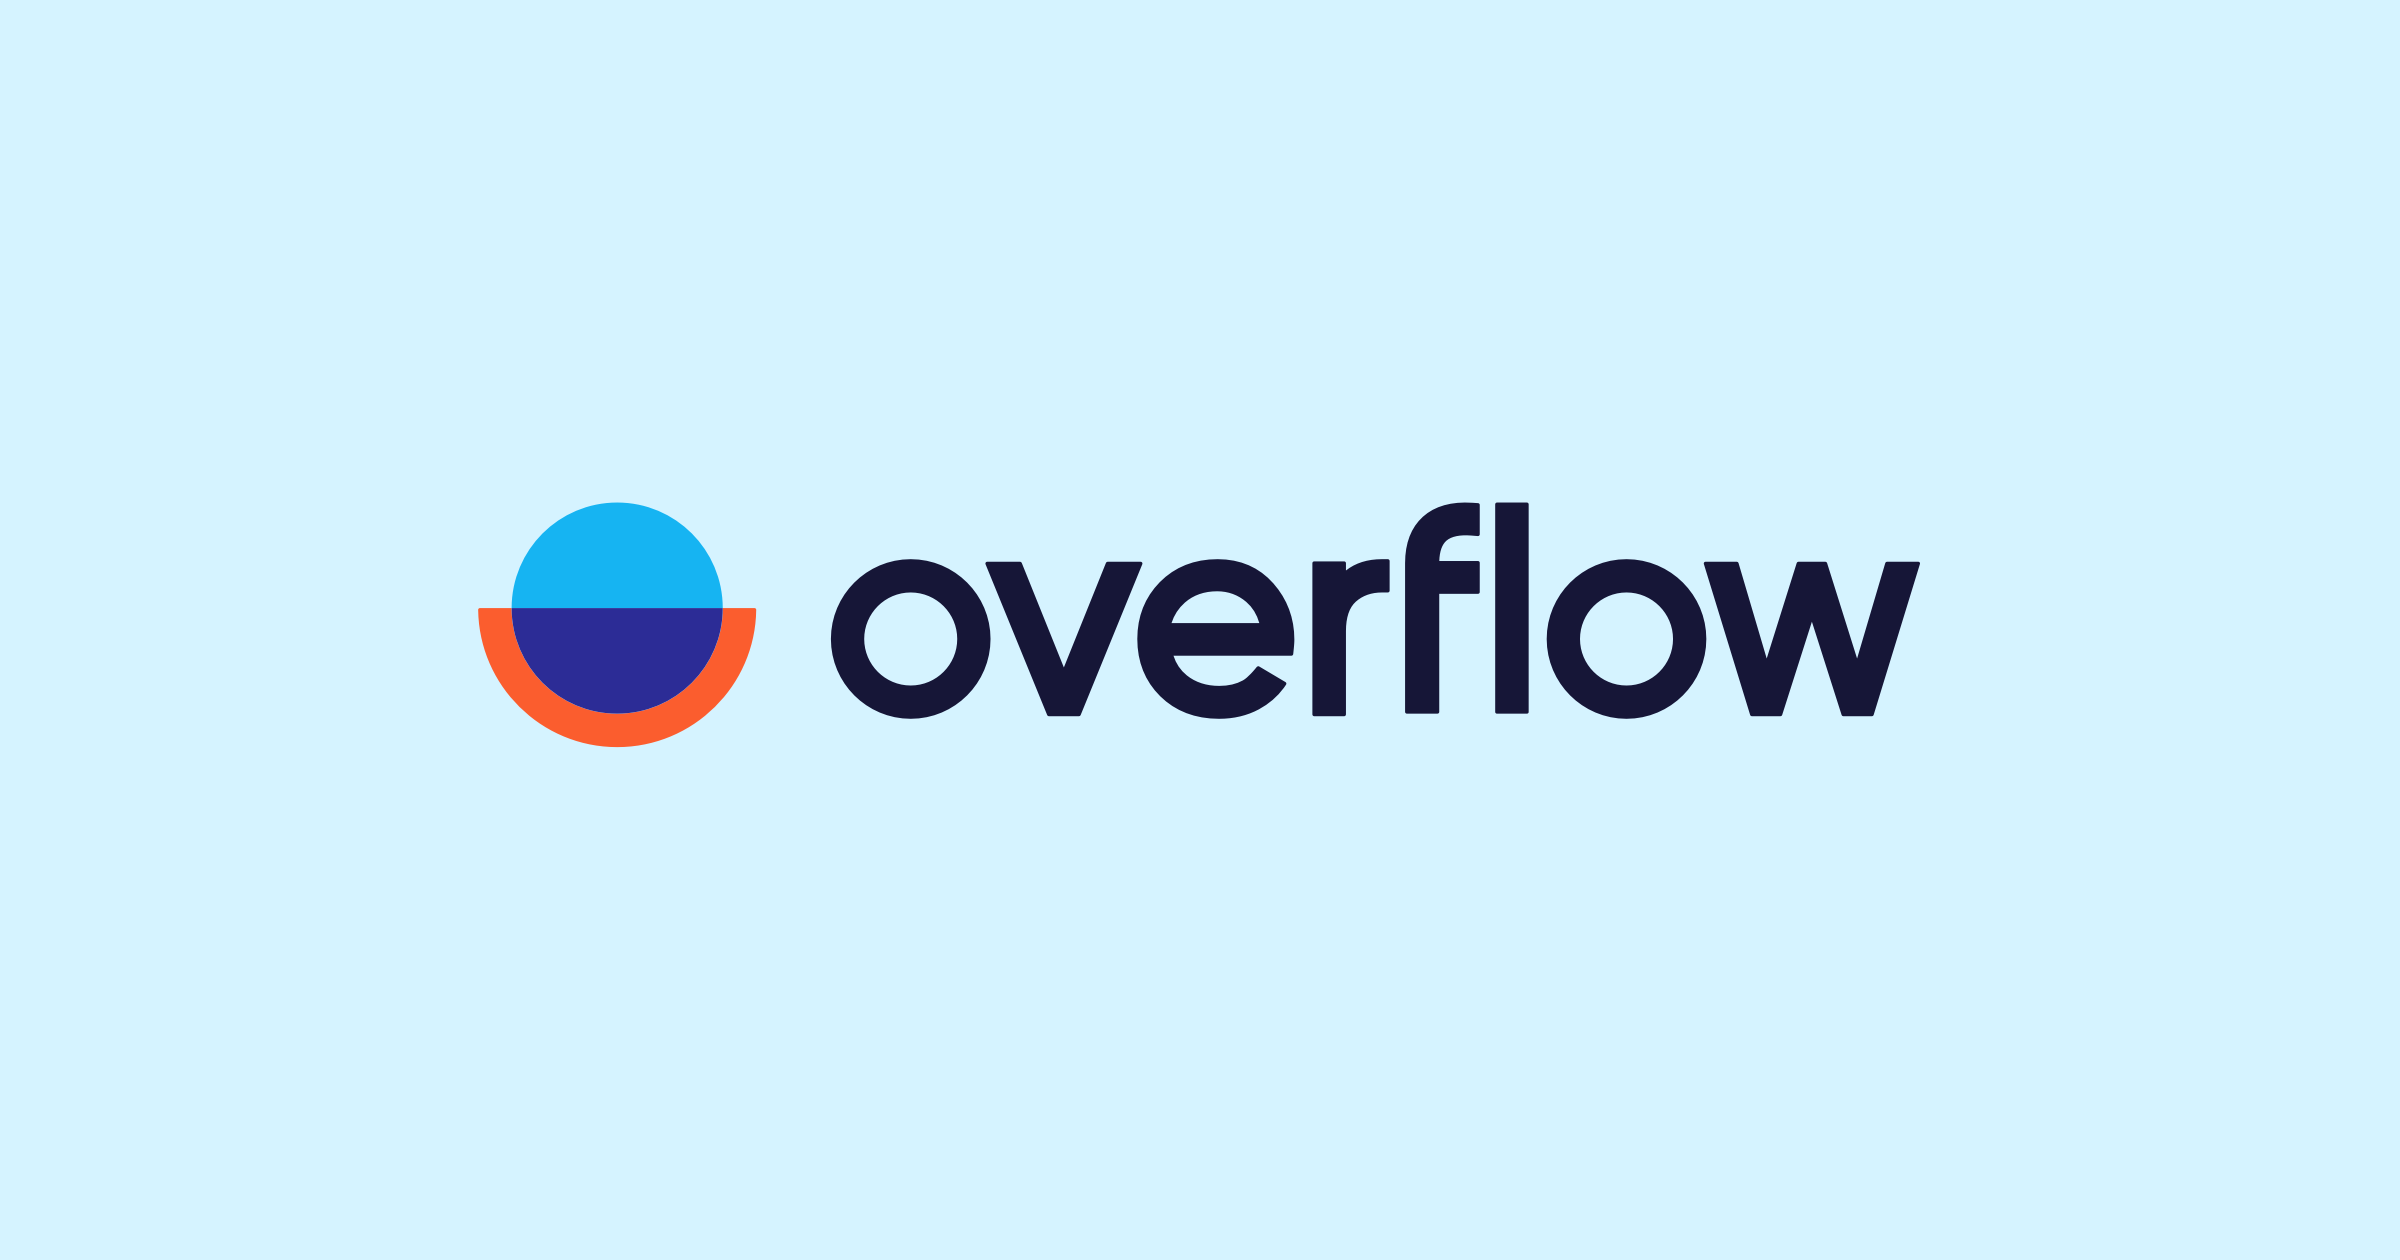 ui workflow diagram crm sales workflow diagram overflow | user flows done right #13